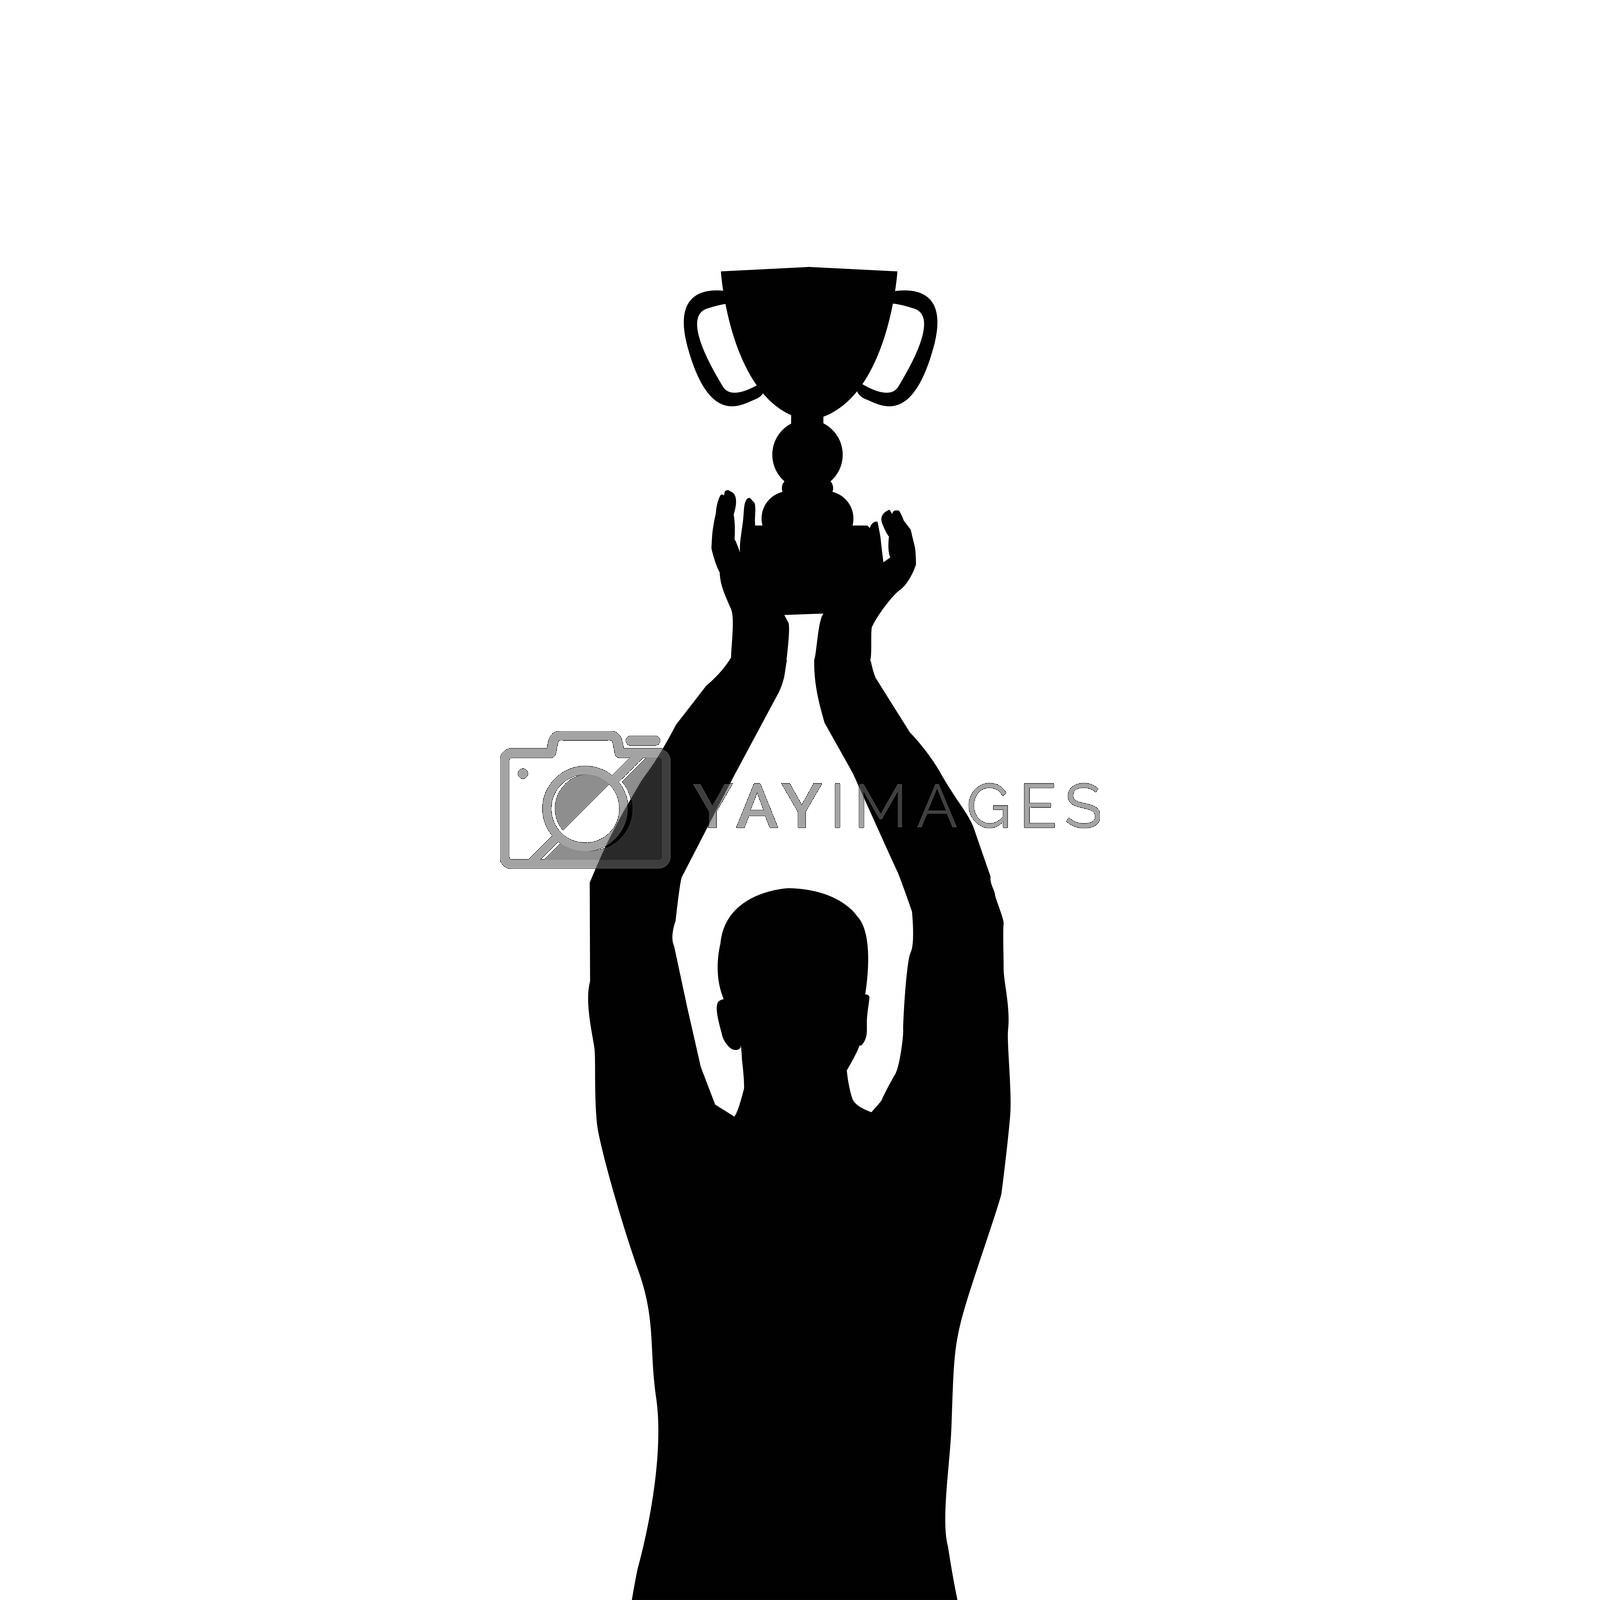 Man silhouette holding a championship trophy